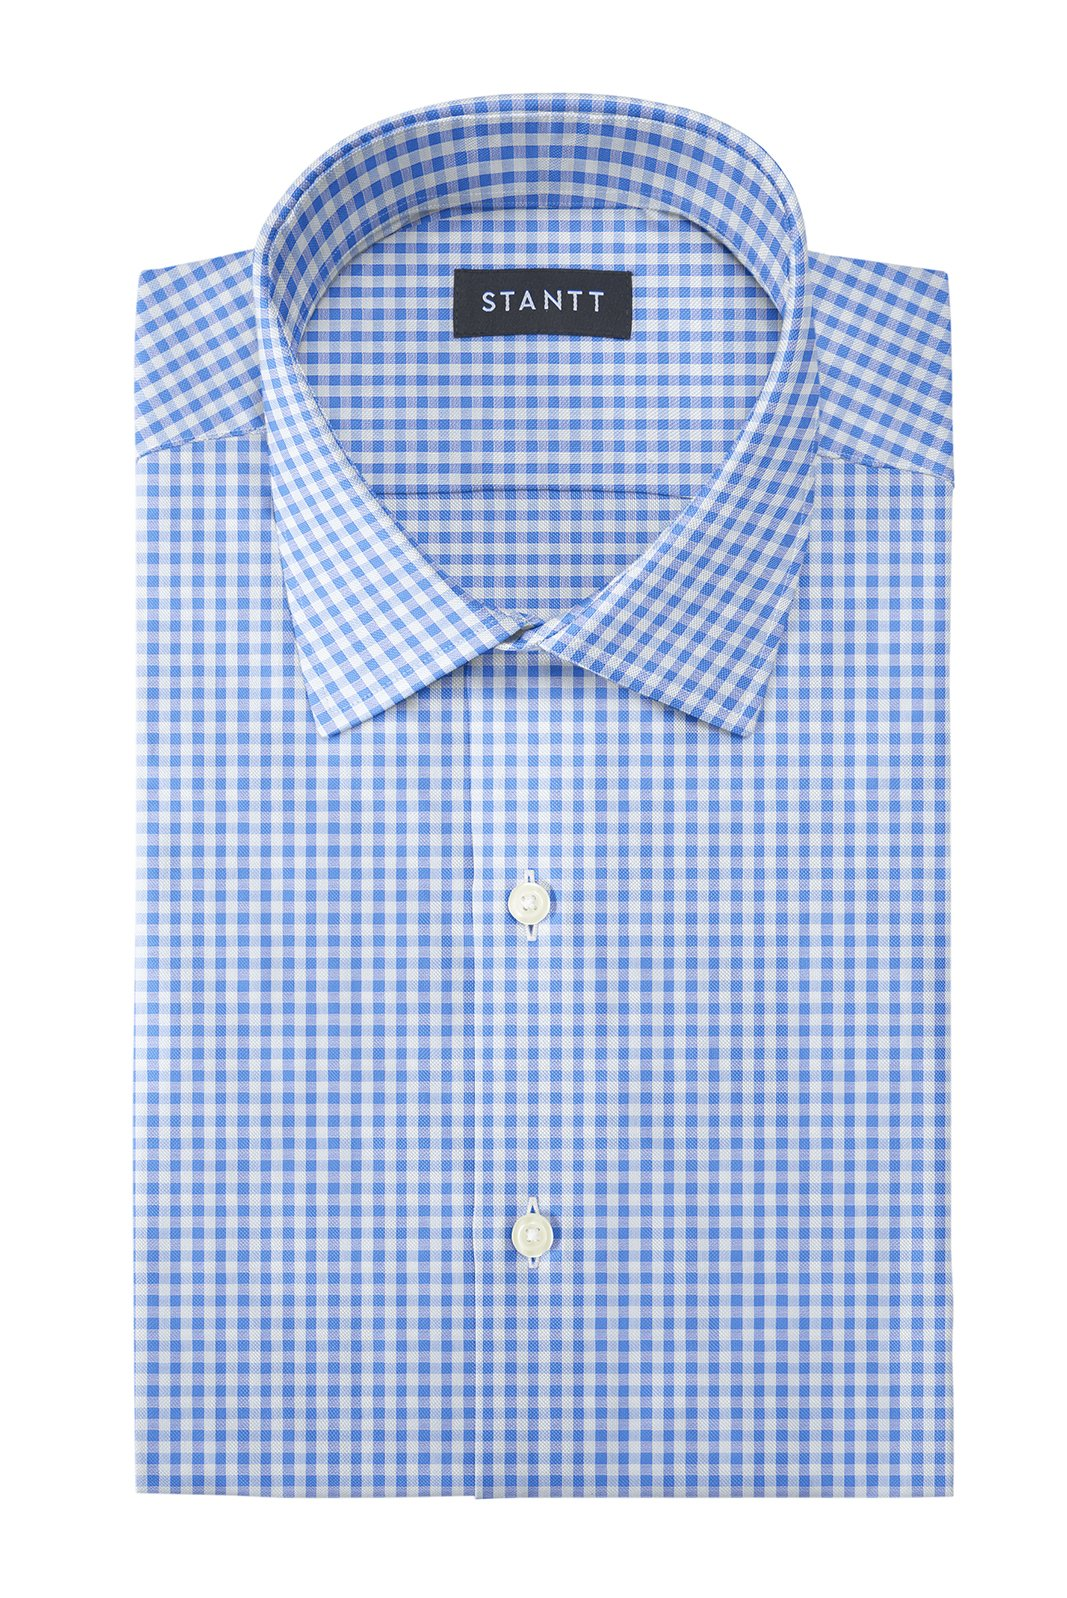 Bishop Blue Gingham: Modified-Spread Collar, French Cuff